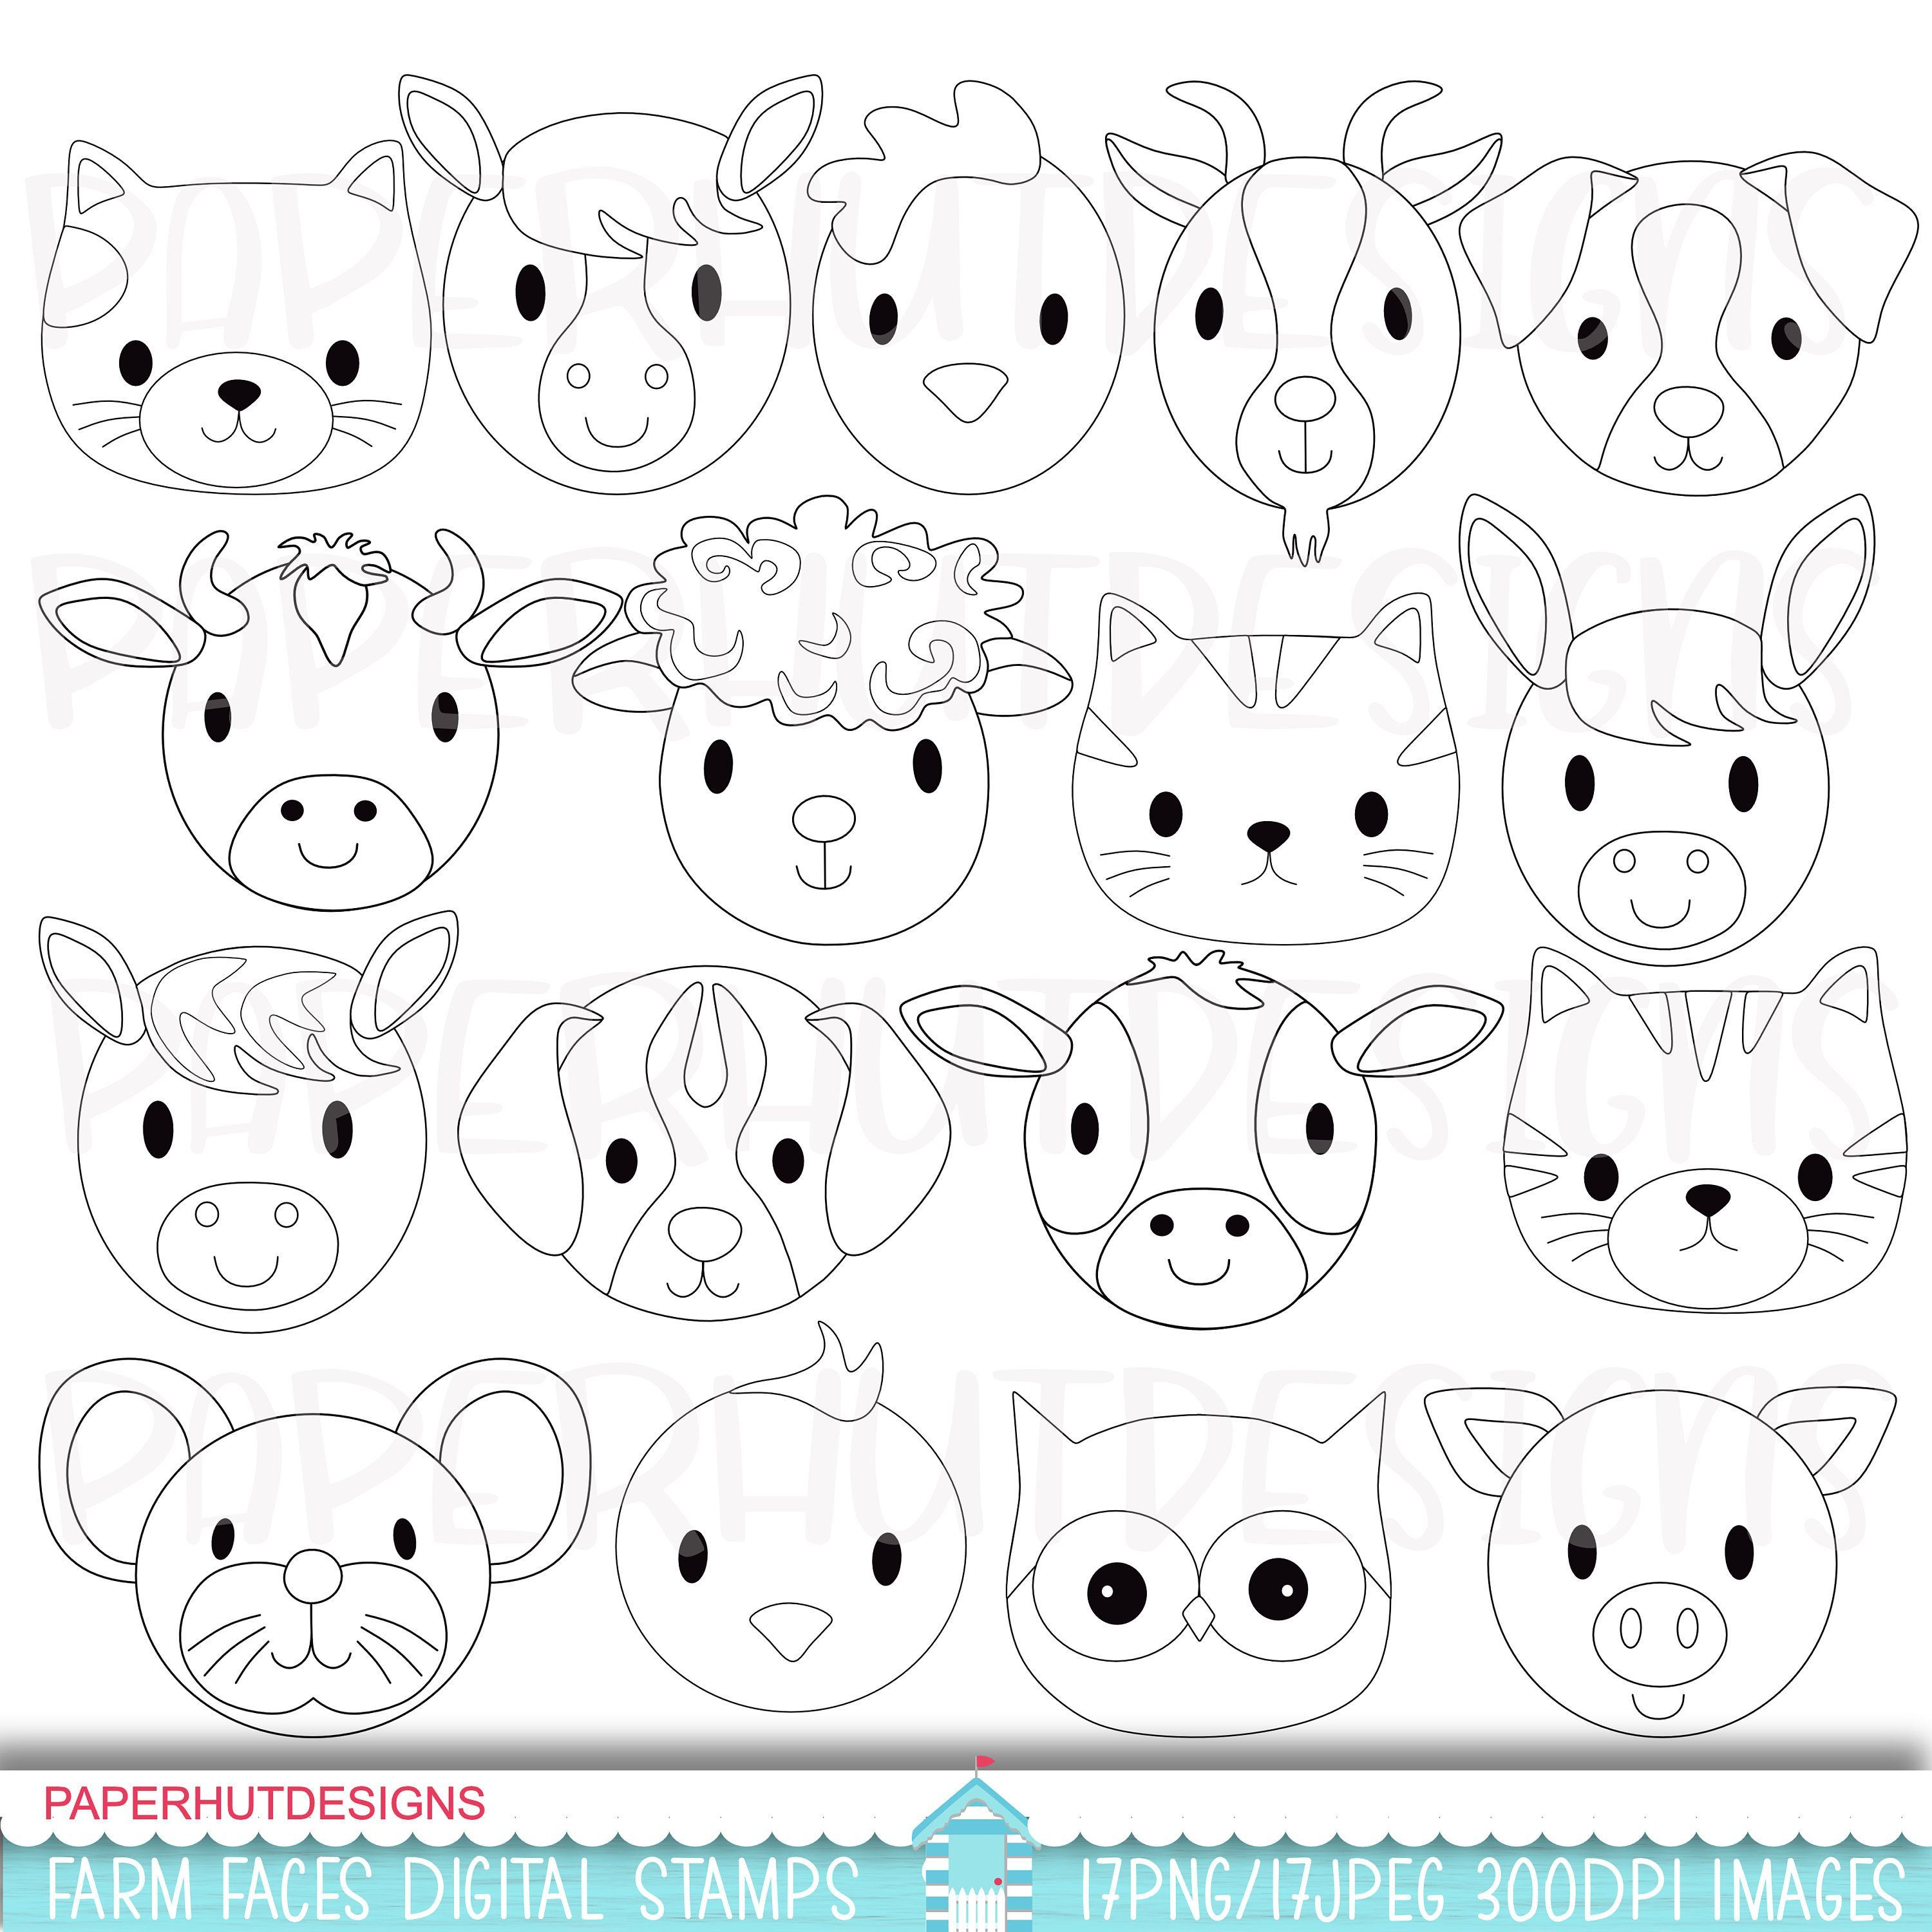 Free Printable Farm Animal Coloring Pages For Kids | 3000x3000